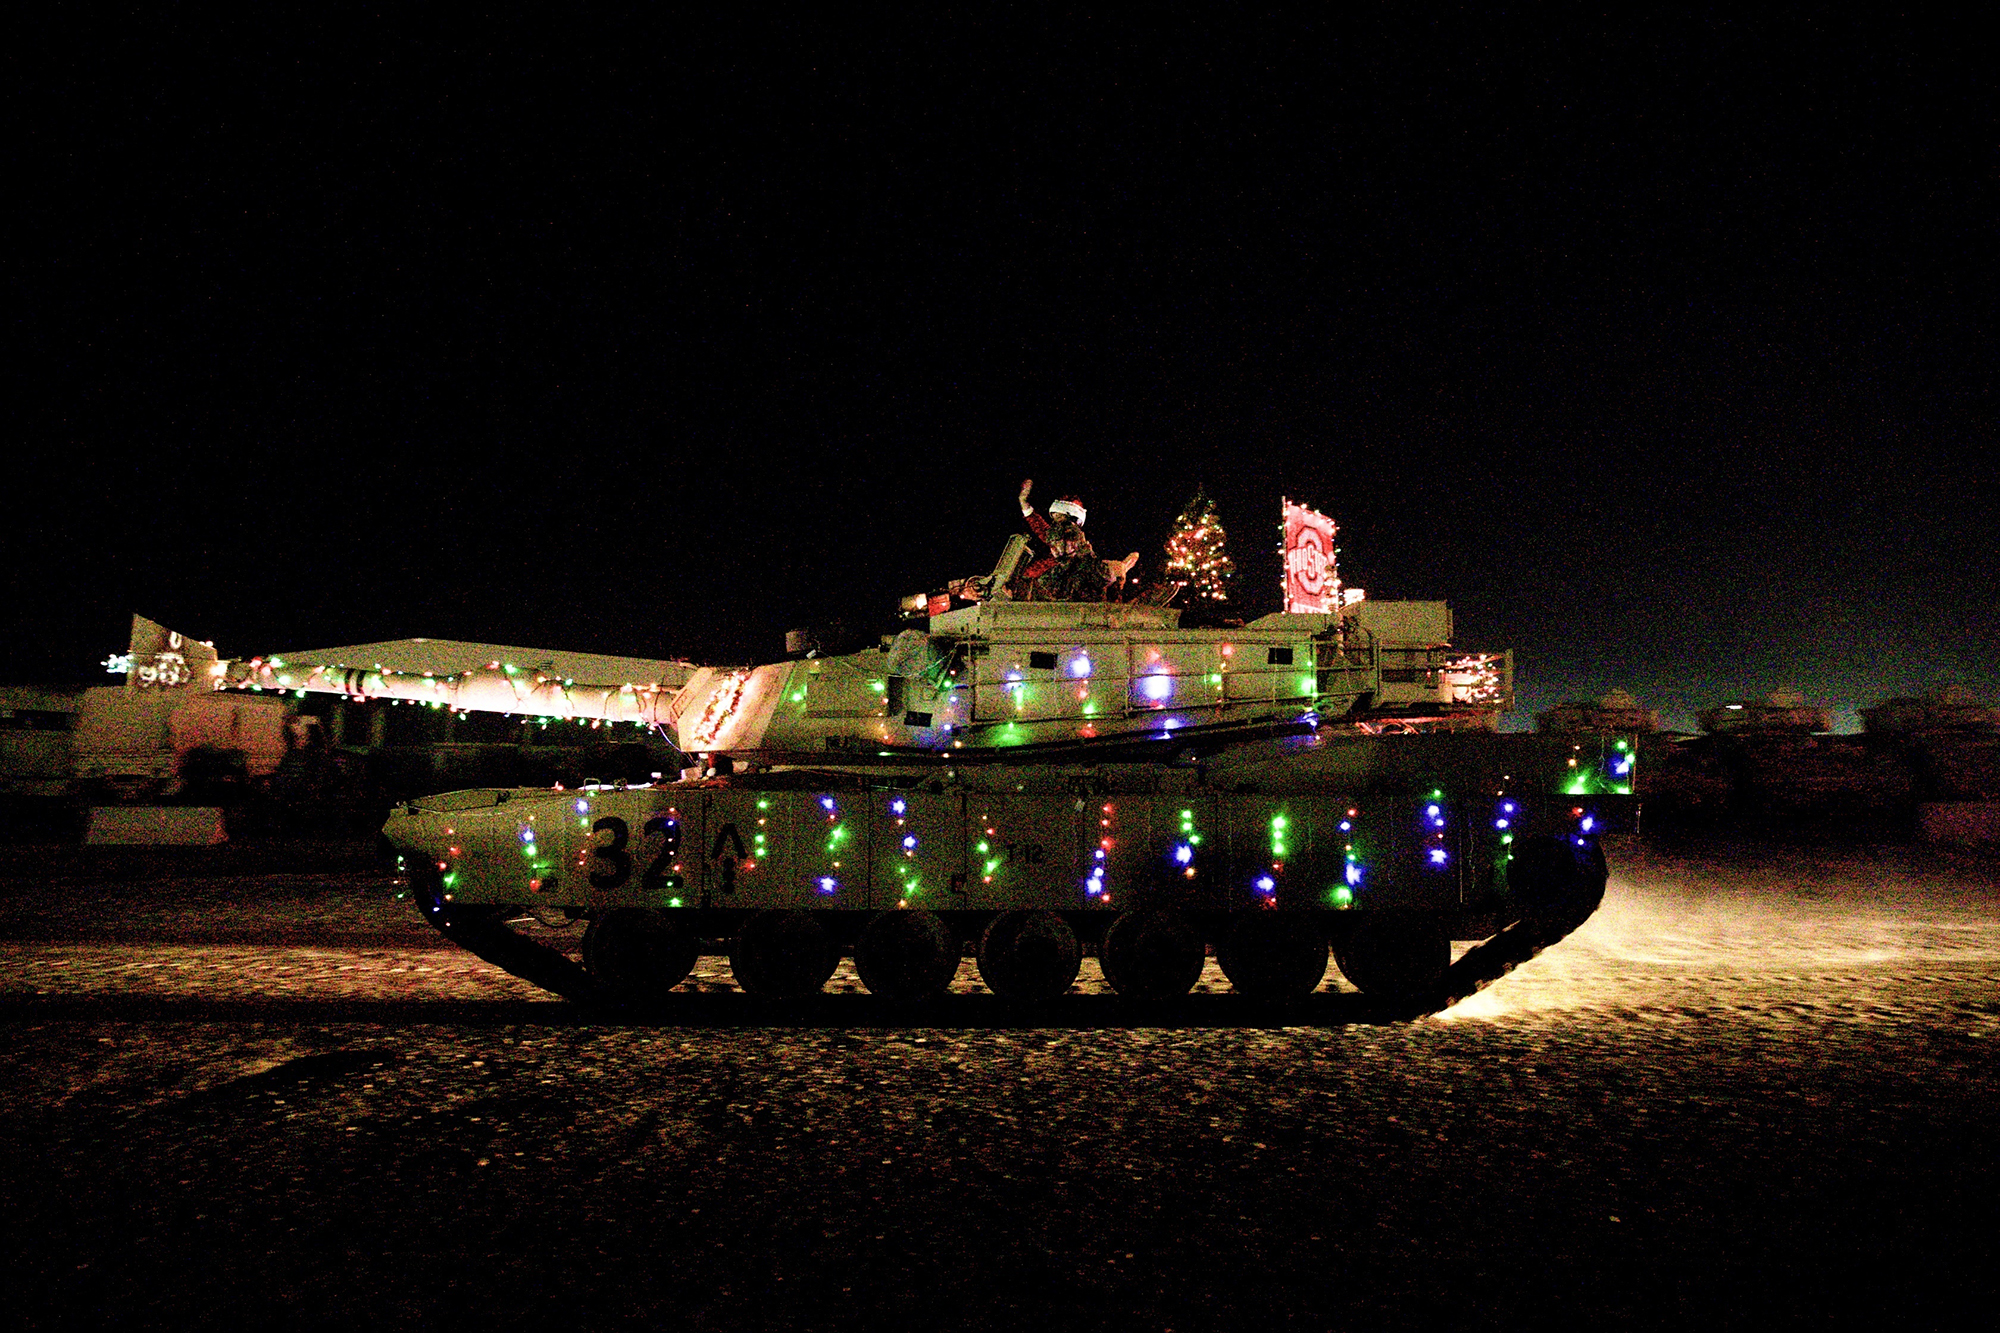 The 30th Armored Brigade Combat Team holiday parade on Dec. 24, 2019, in Kuwait. (Sgt. Devin Lewis/Army)